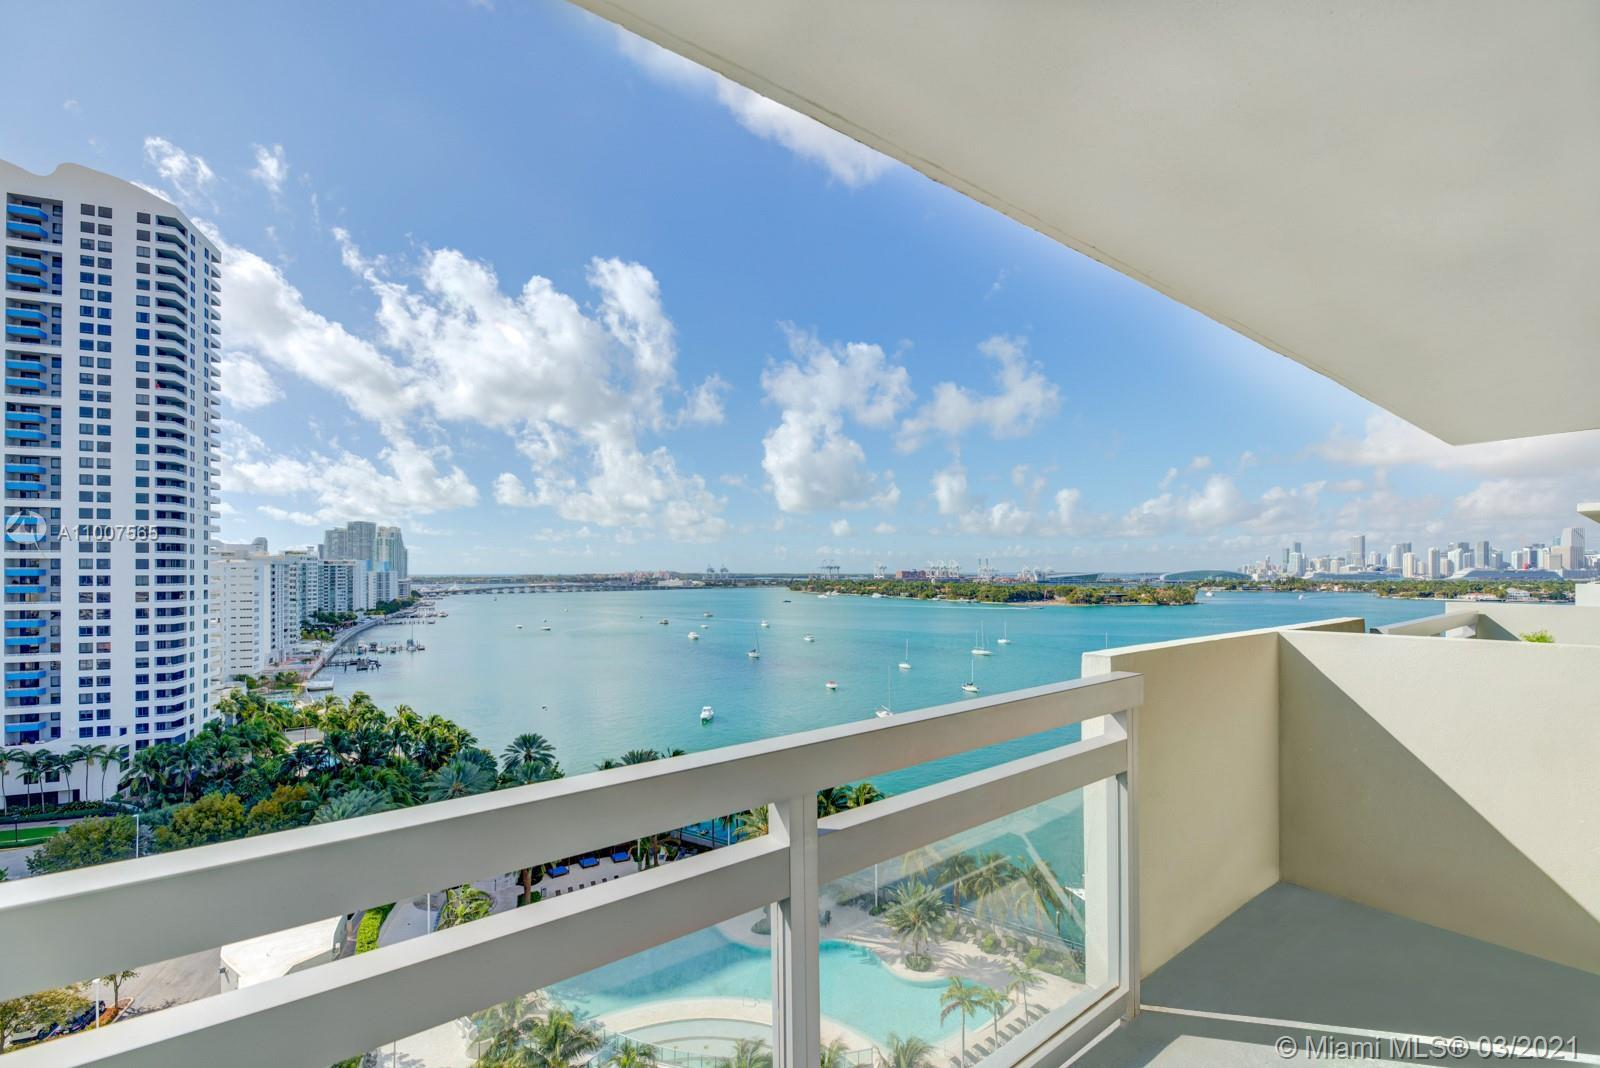 Stunning waterfront penthouse that has been meticulously and tastefully remodeled. The unit has maxi